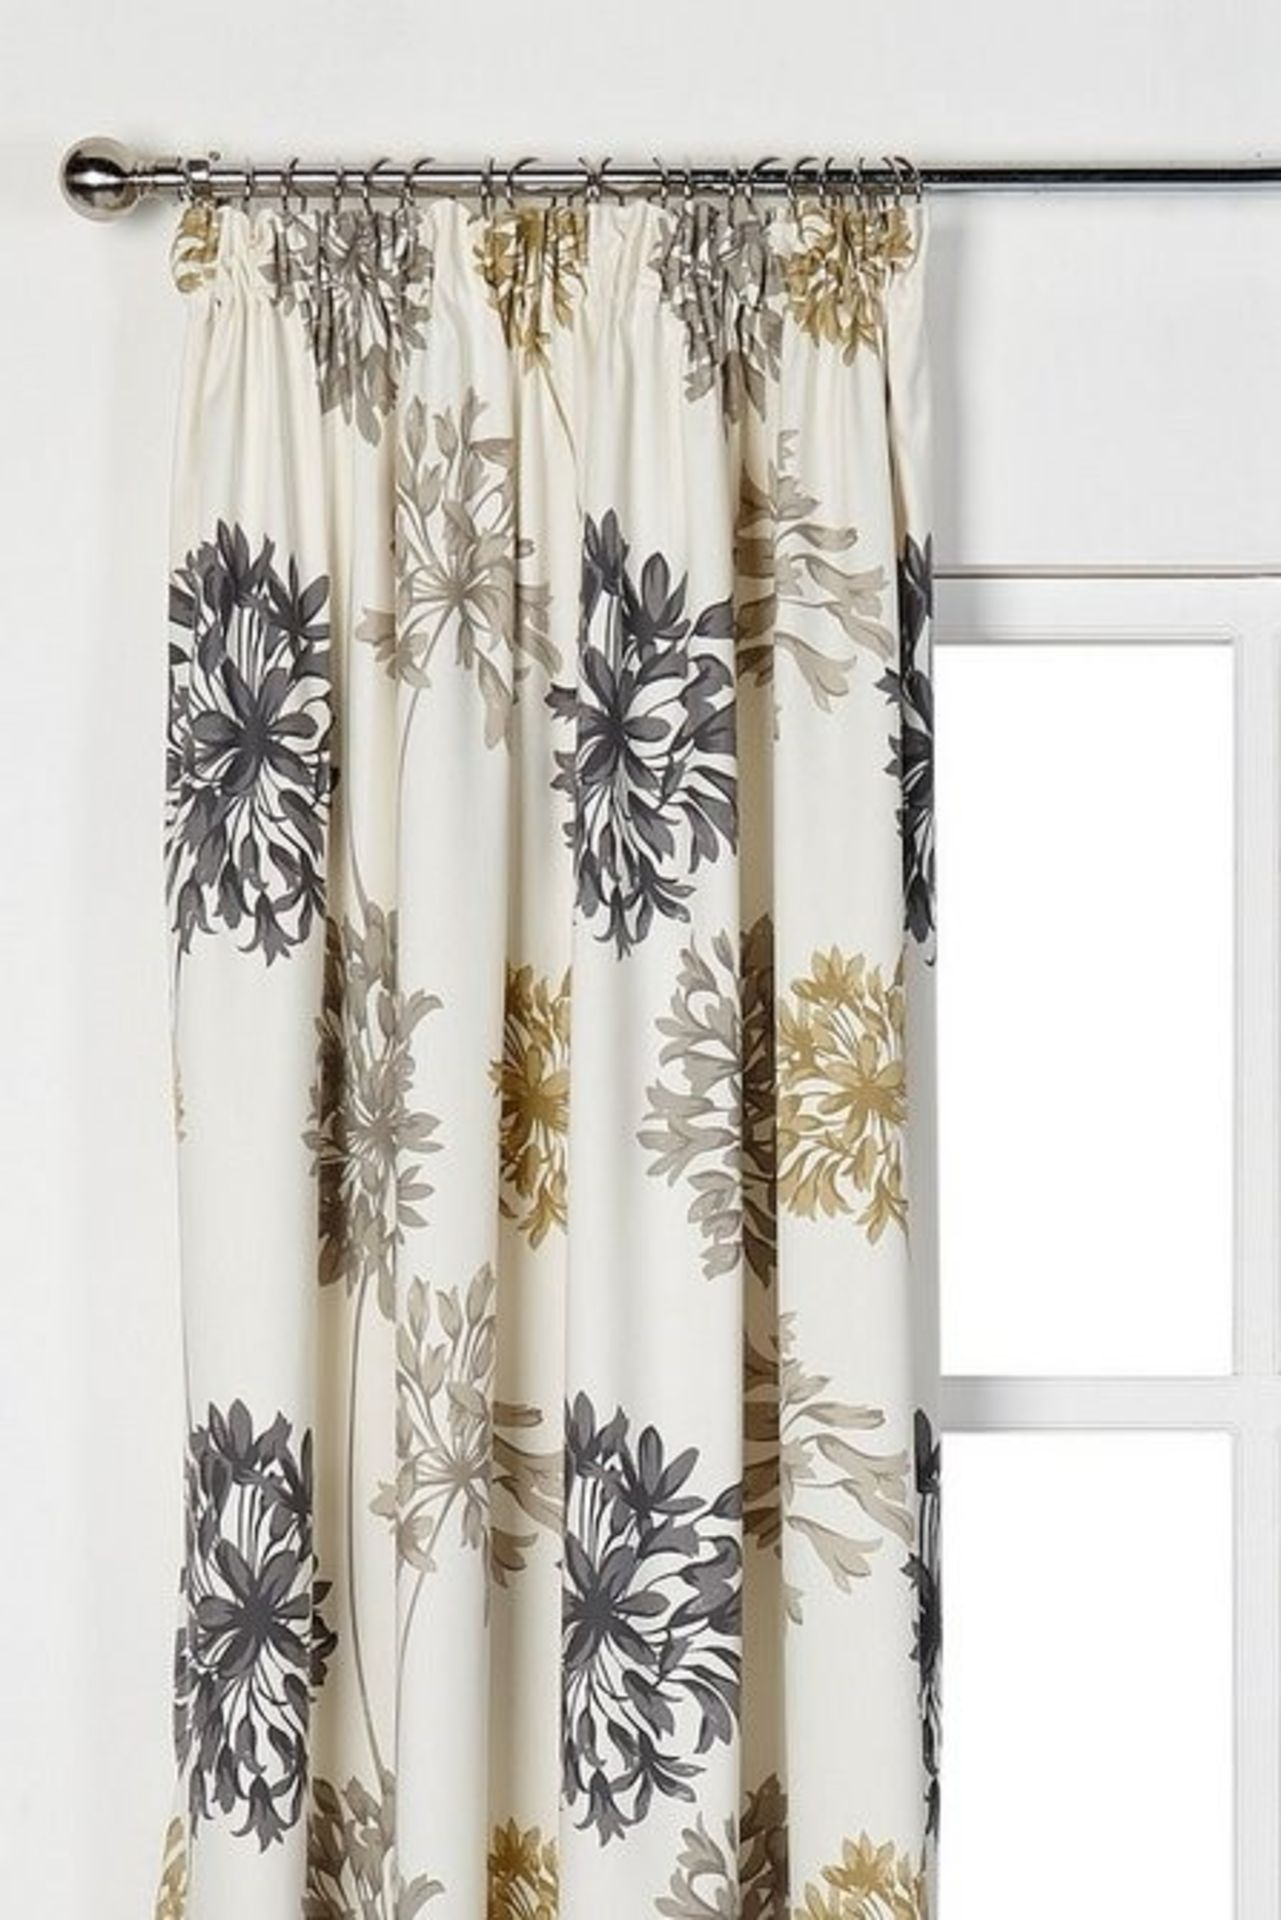 """Lot 4 - 1 AS NEW BAGGED PAIR OF LAURABETH PENCIL PLEAT LINED CURTAINS / 66 X 72"""" / RRP £37.99 (PUBLIC"""